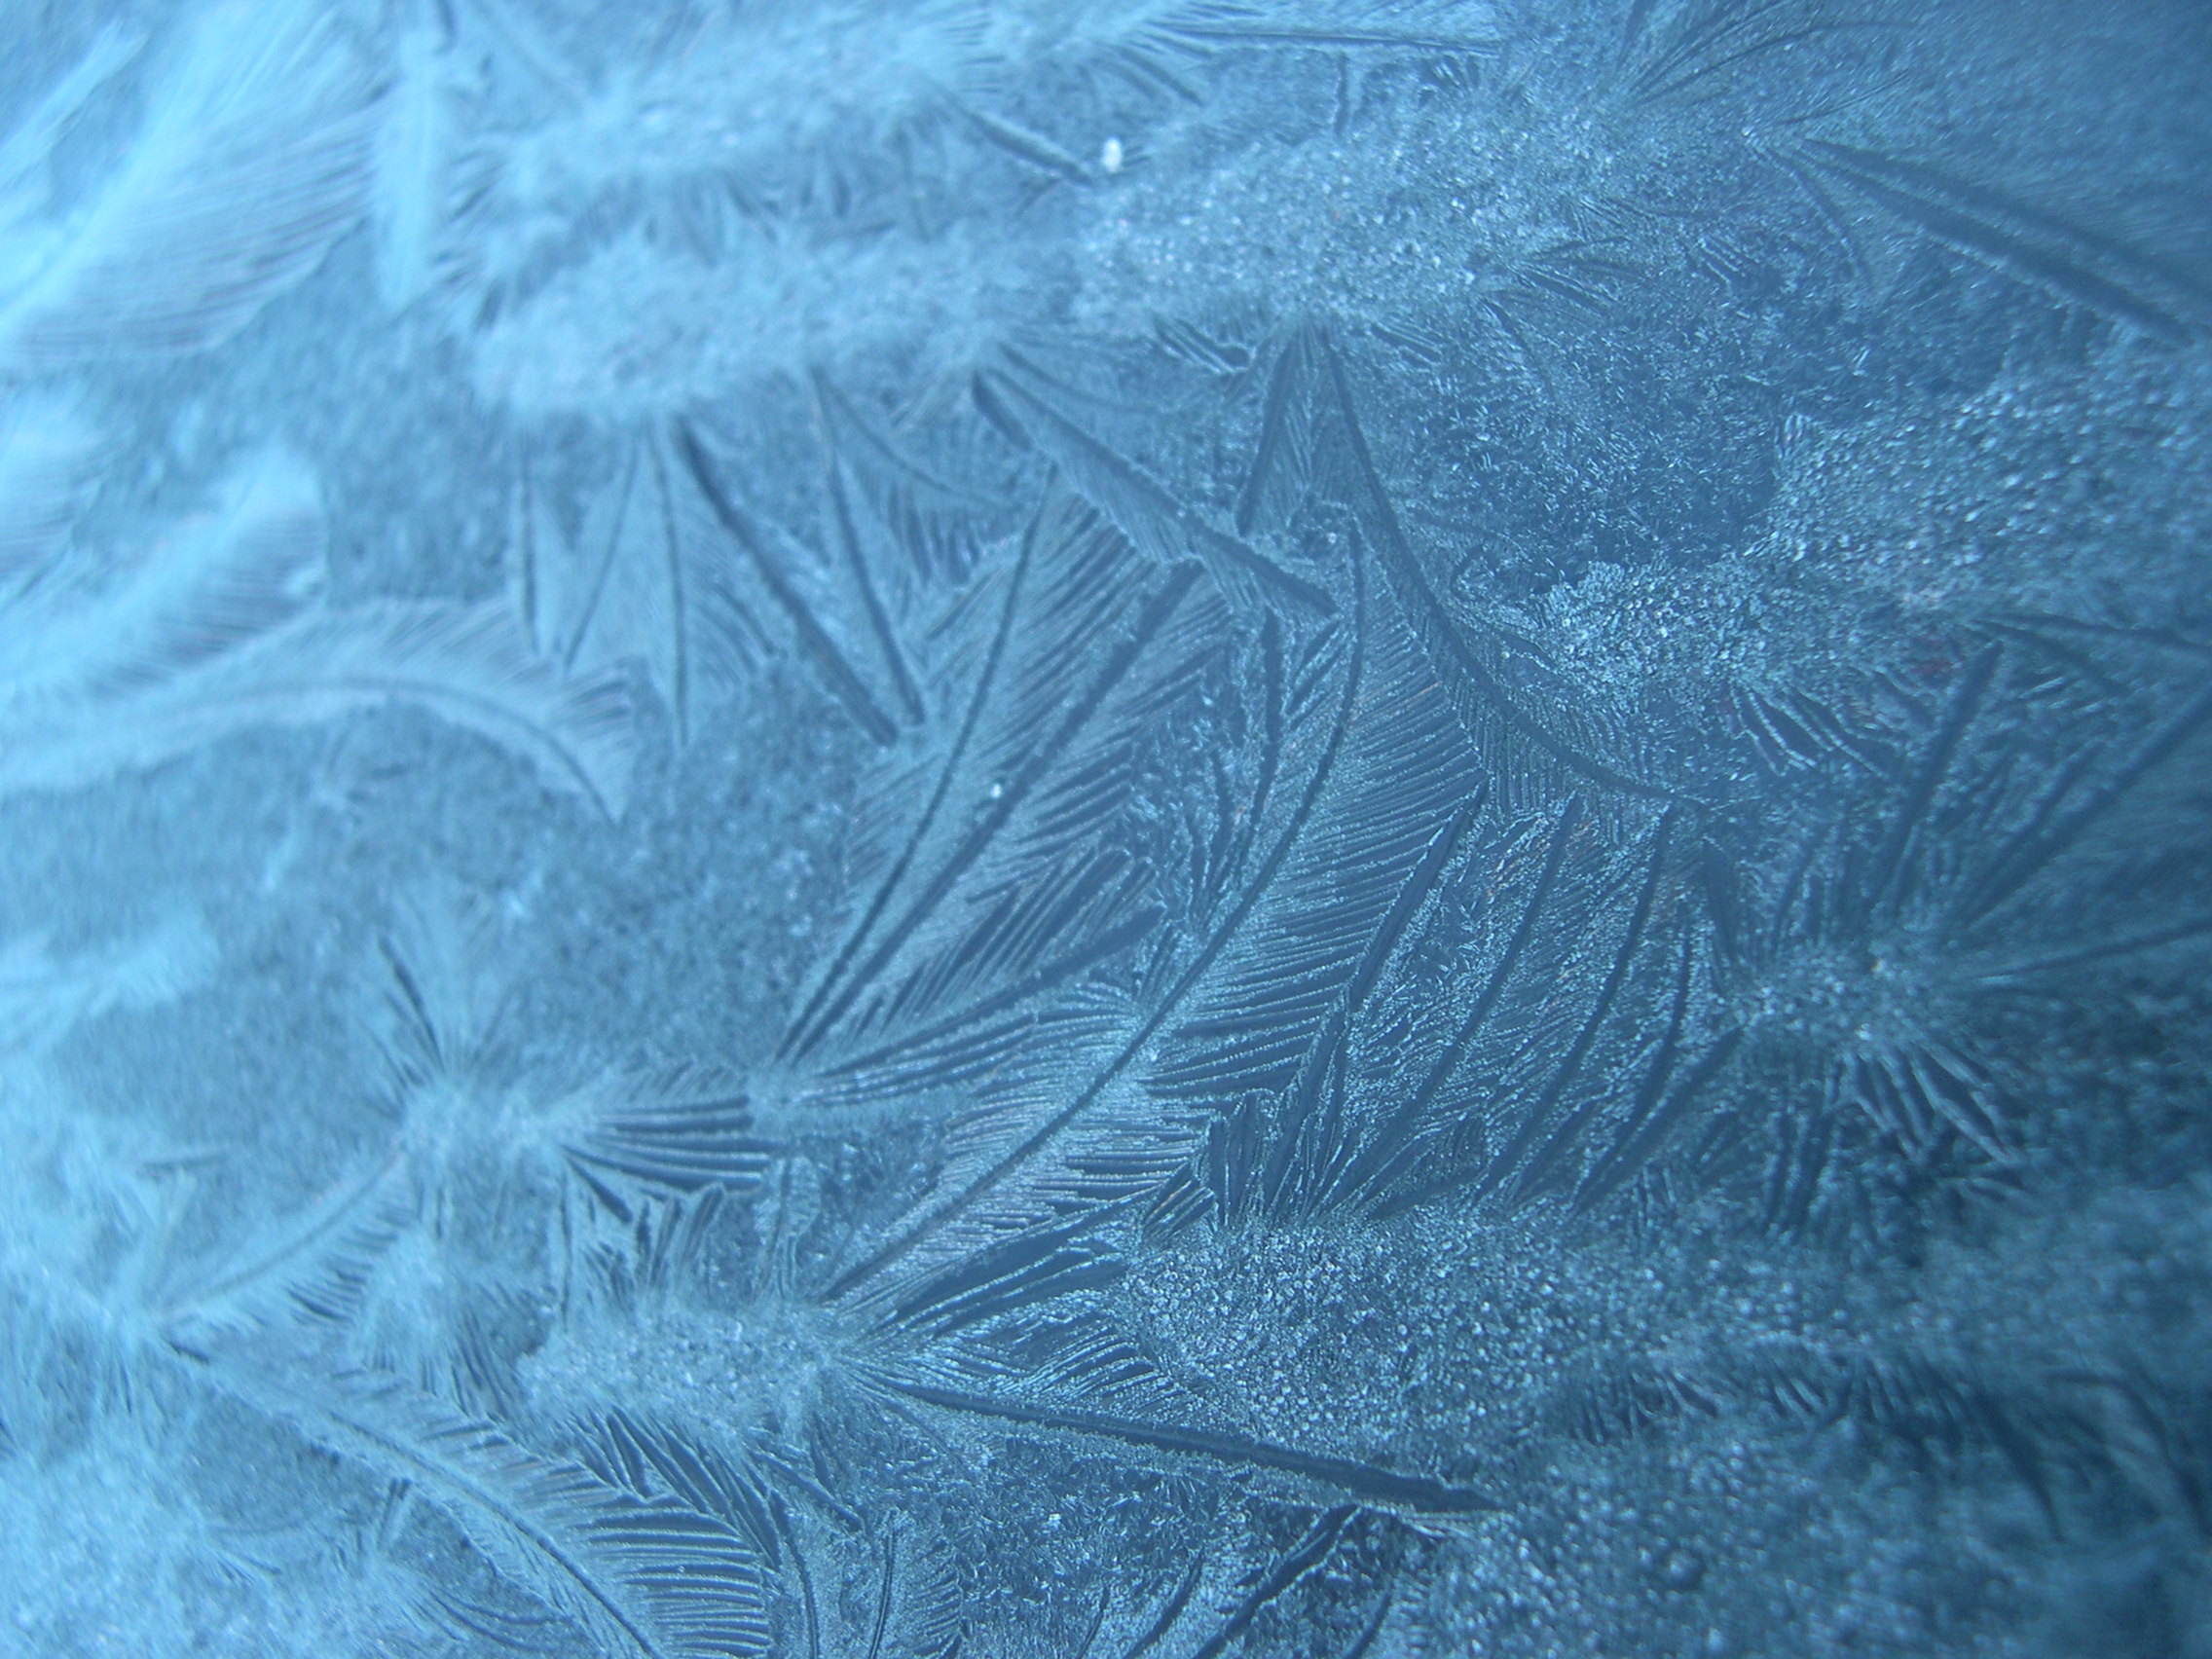 Frost patterns on glass photo